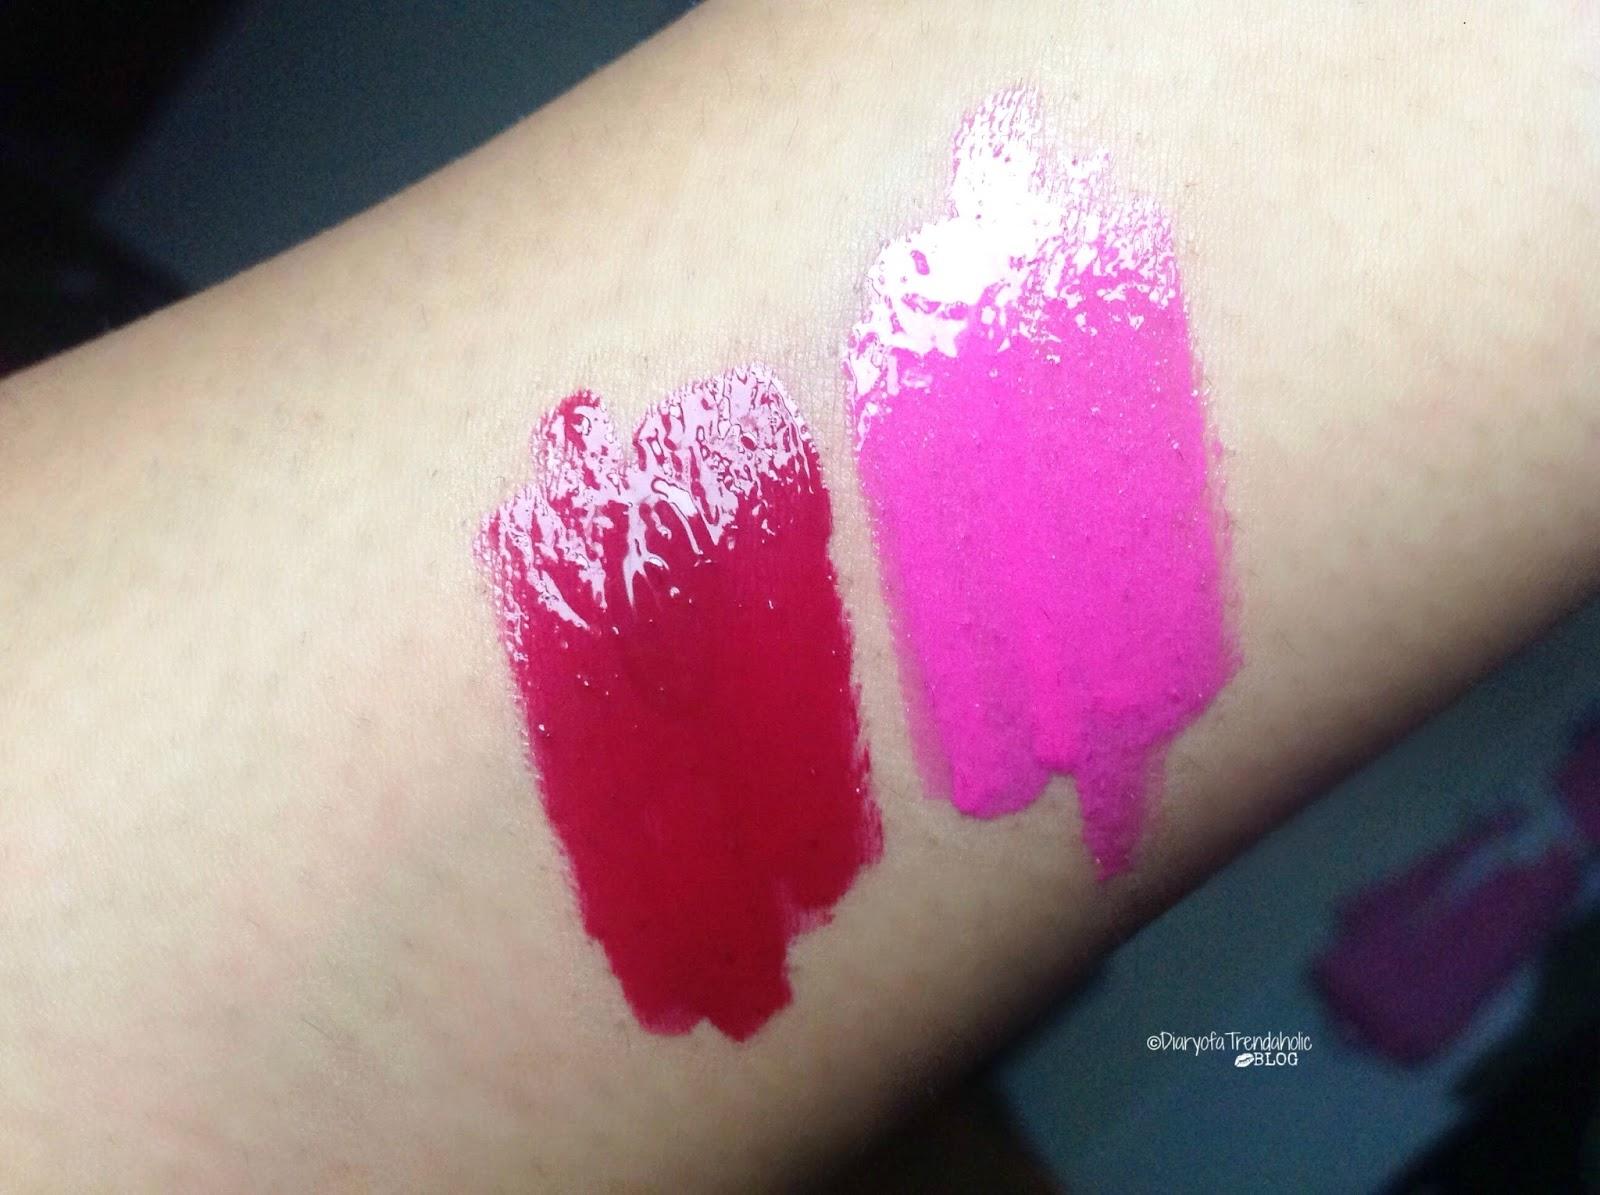 Diary Of A Trendaholic Revlon Ultra Hd Lipsticks And Lip Lacquers Lipstick No840 Pointsettia Swatches From Left To Right 545 Carnelian 510 Tourmaline